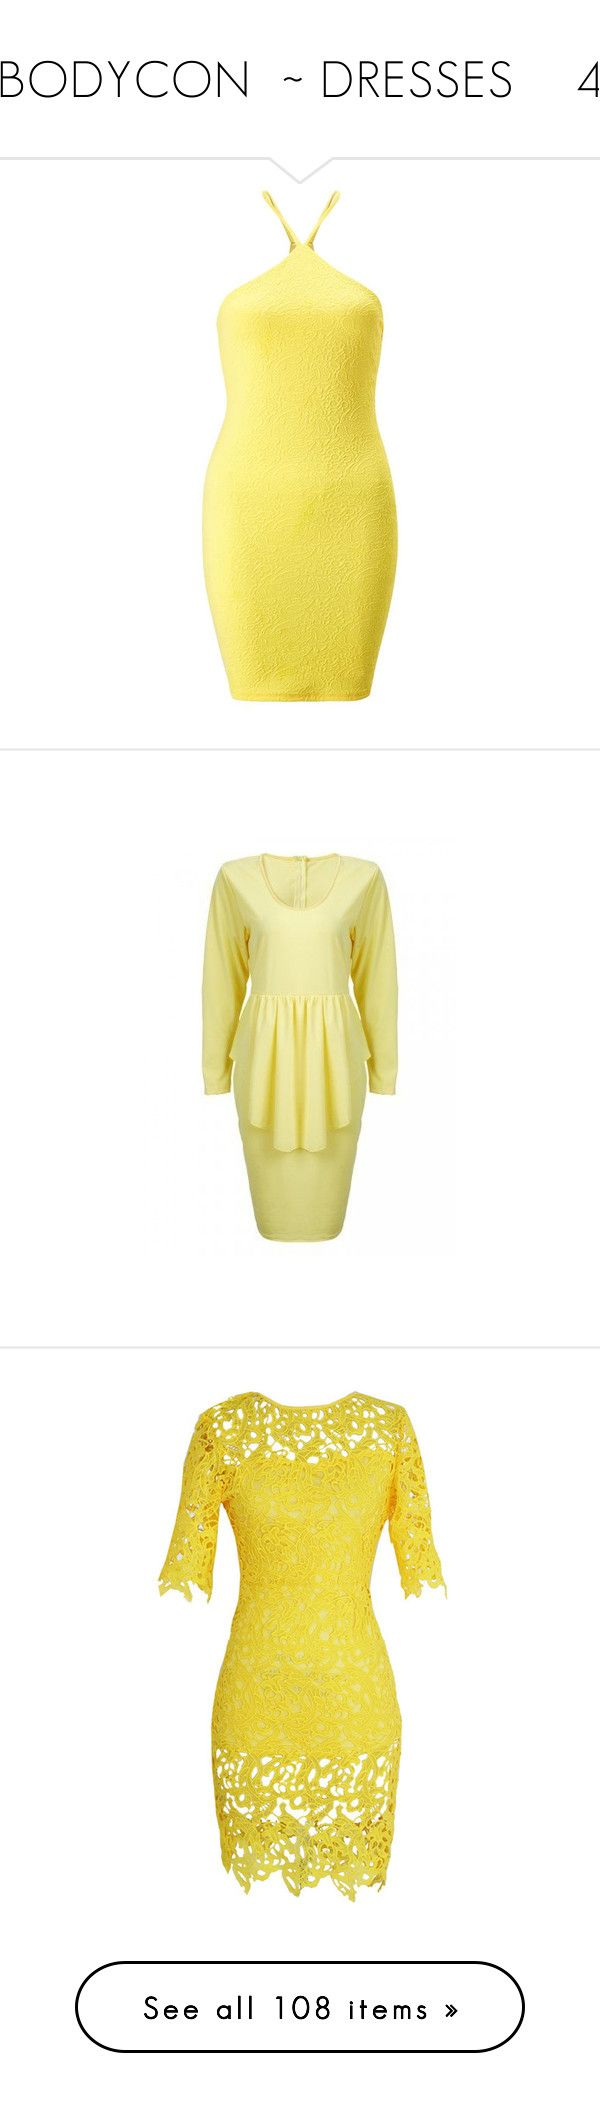 """""""BODYCON  ~ DRESSES    4"""" by kuropirate ❤ liked on Polyvore featuring dresses, petite, yellow, body con dress, yellow dresses, yellow body con dress, petite bodycon dresses, miss selfridge dress, yellow bodycon dress and long sleeve bodycon dress"""